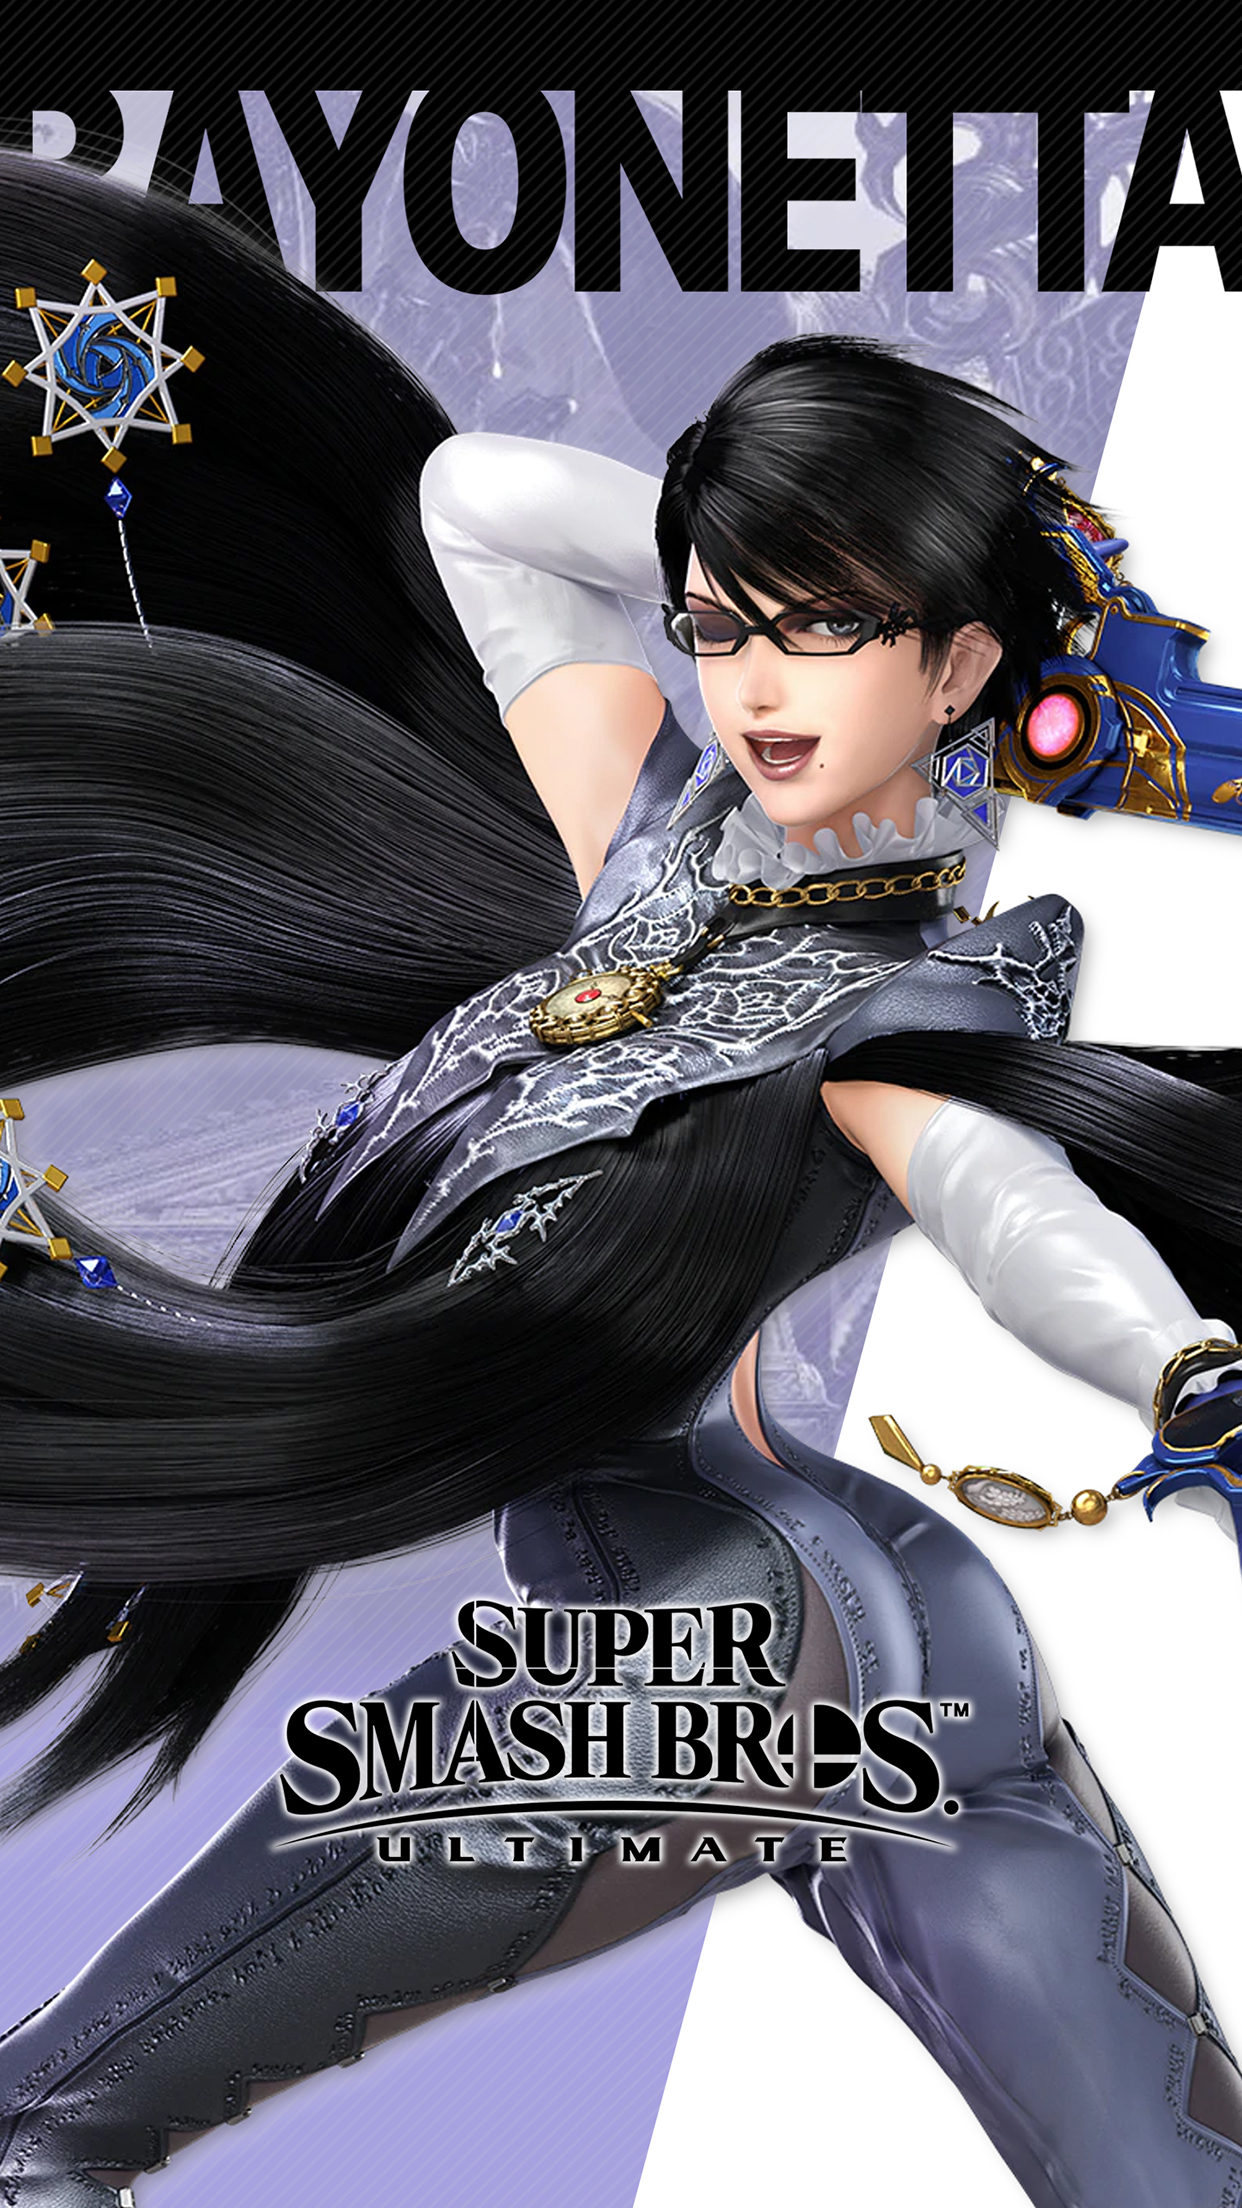 Iphone Se Wallpaper Size Super Smash Bros Ultimate Bayonetta Wallpapers Cat With